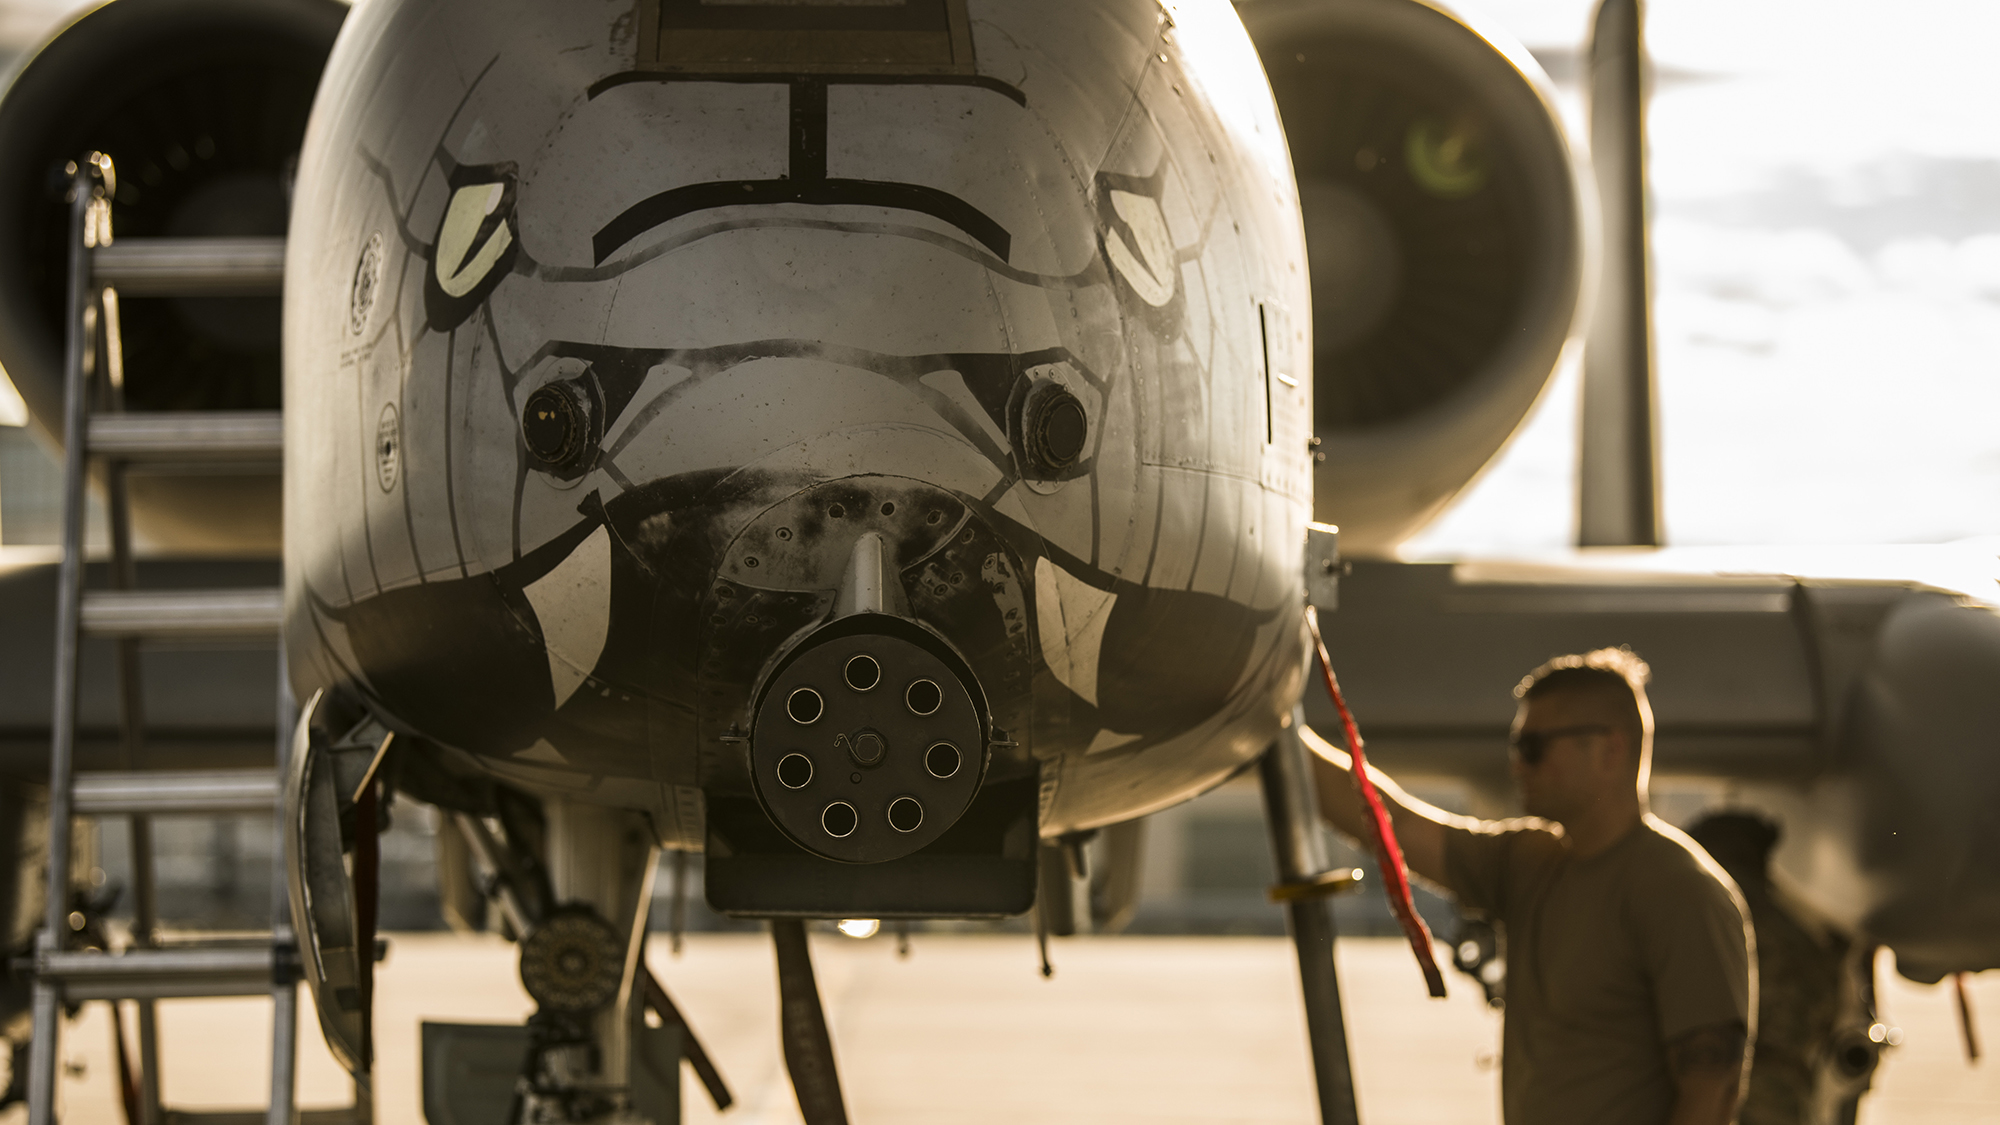 Sgt. Austin Radke, an aircraft maintenance crew chief assigned to the 122nd Fighter Wing, Indiana Air National Guard, performs a preflight inspection on an A-10C Thunderbolt II aircraft June 24, 2020, at the 122nd Fighter Wing in Fort Wayne, Ind. (Tech. Sgt. William Hopper/Air National Guard)